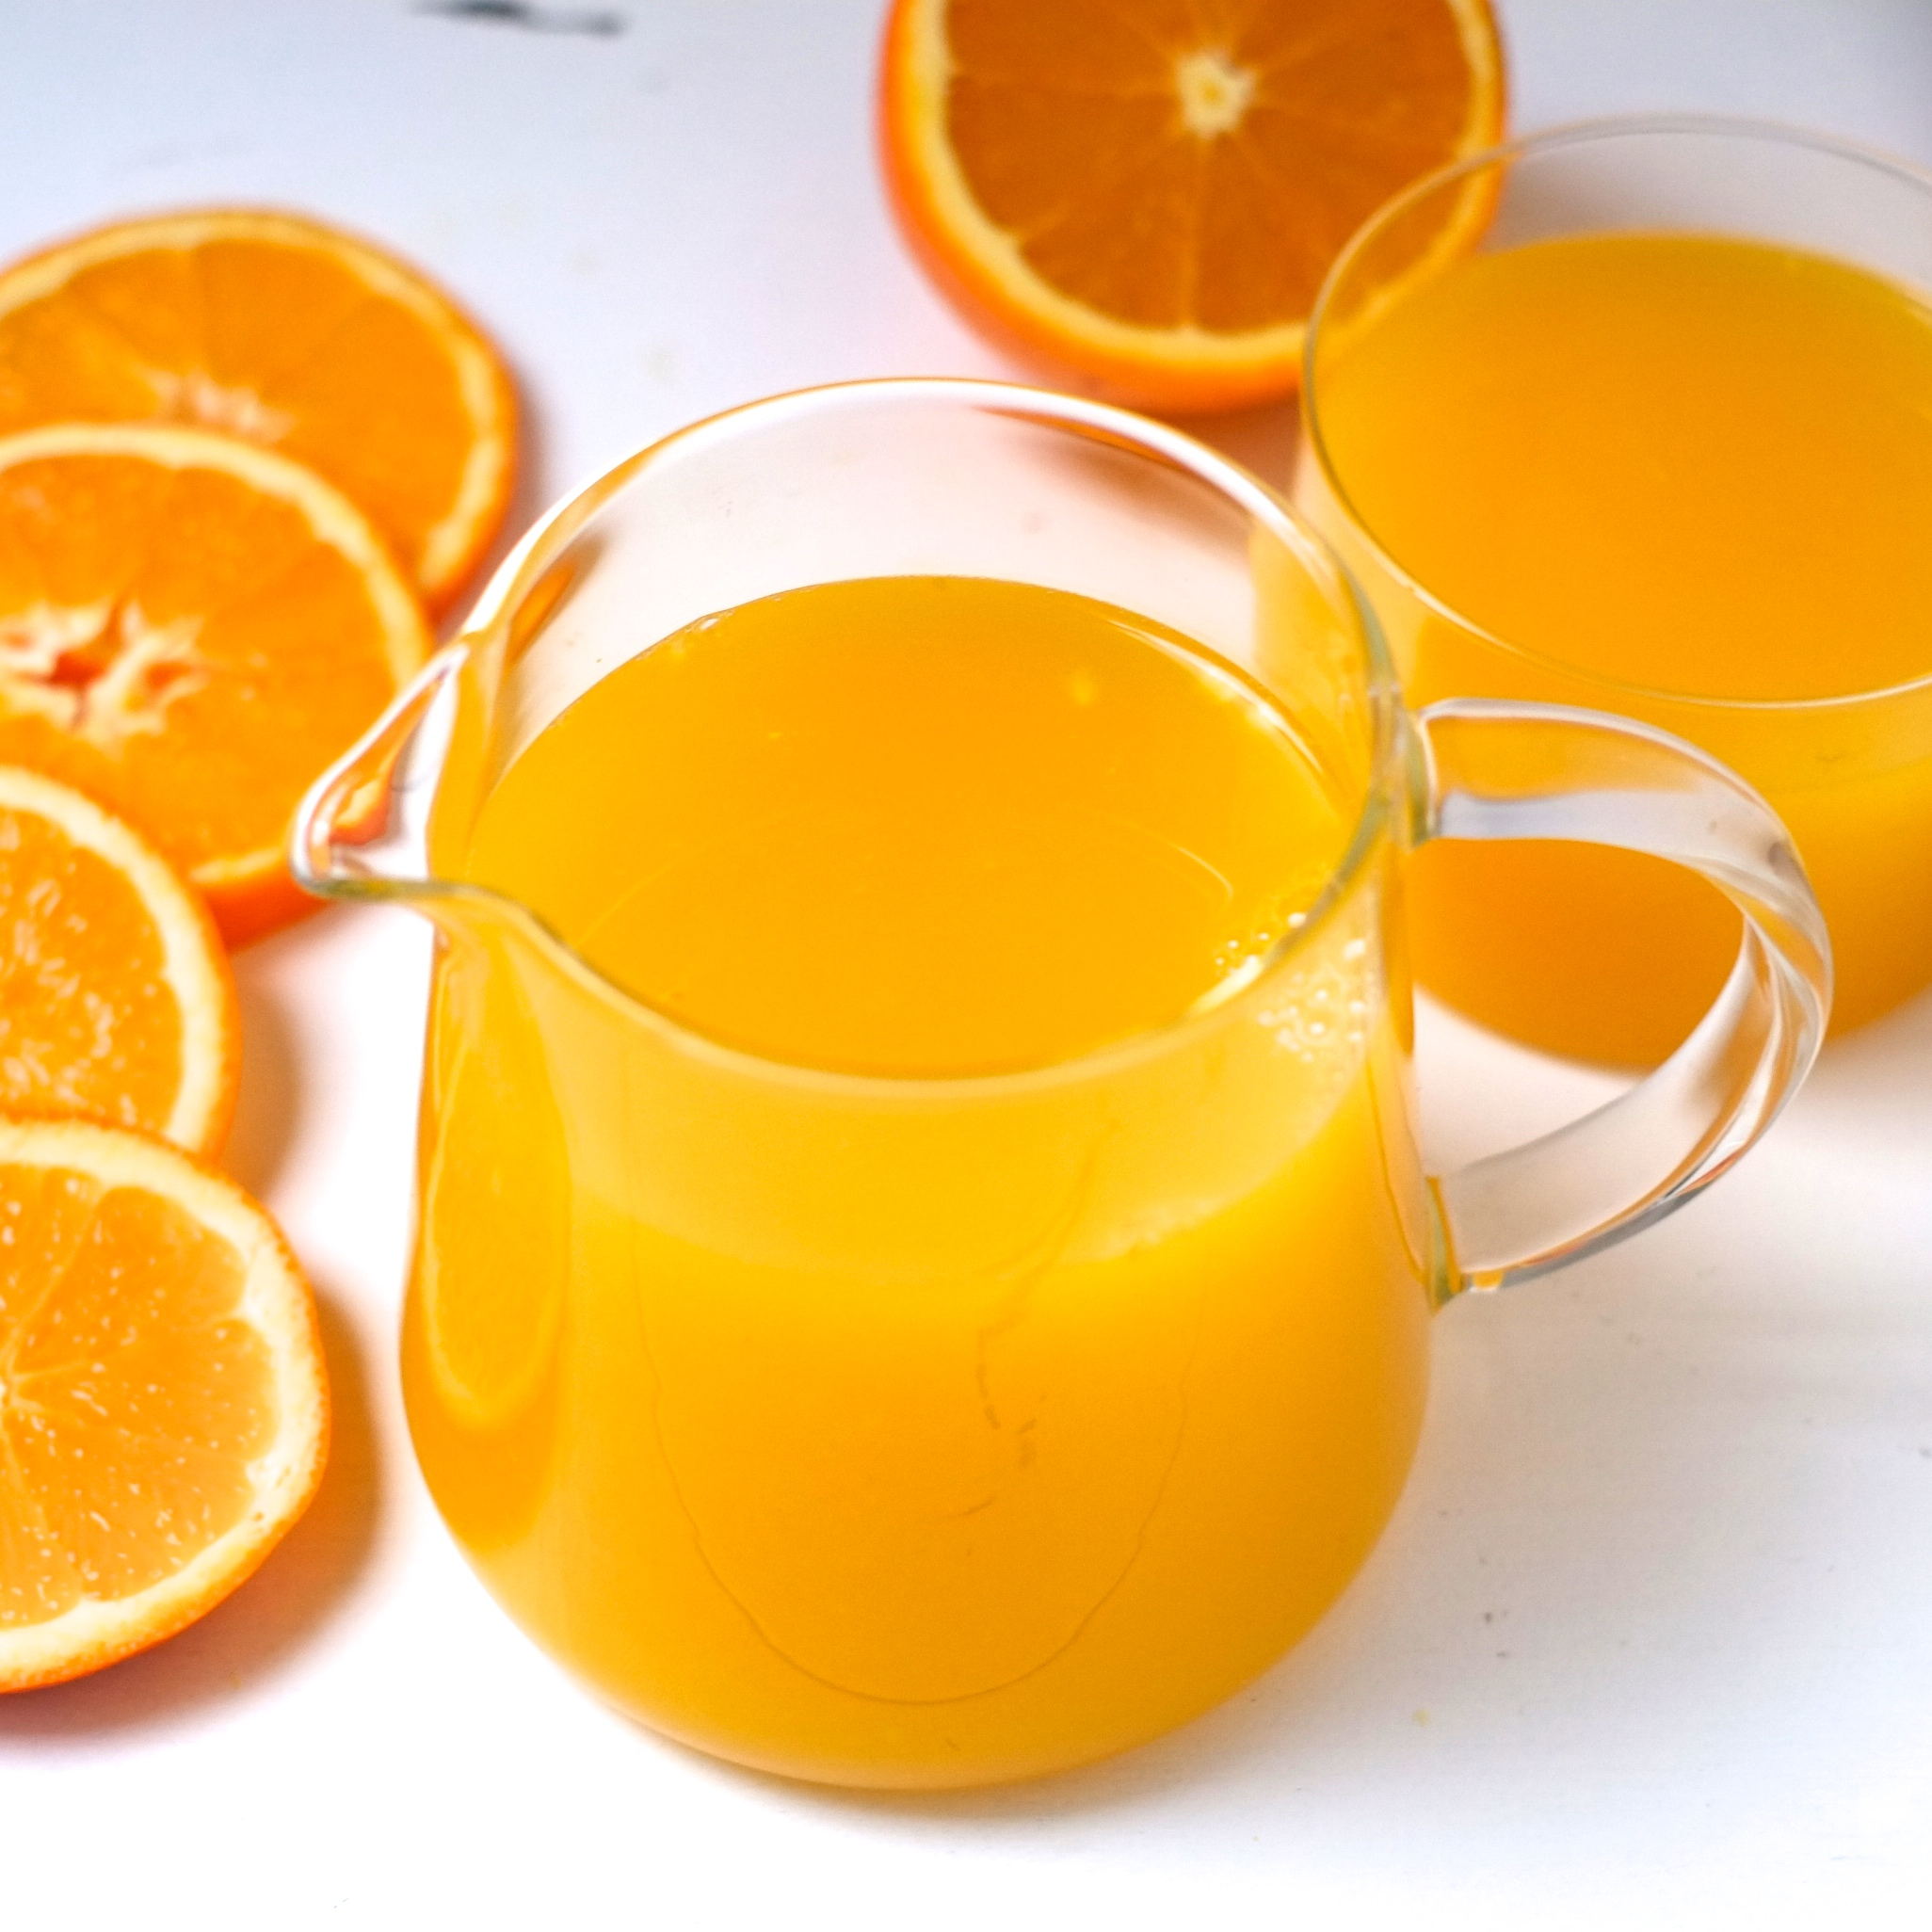 Jus d'orange pressé (1 litre)